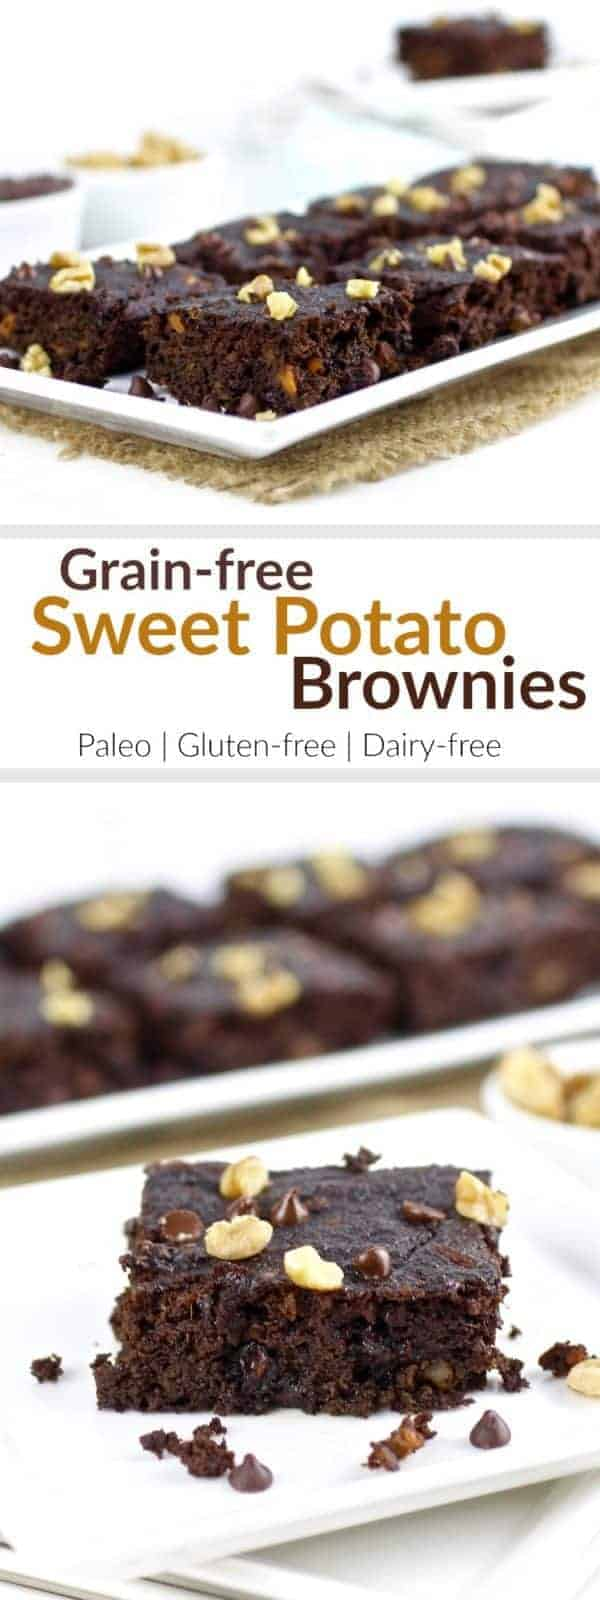 Grain-free Sweet Potato Brownies are paleo-friendly, nutritious and just what you need when you want a little something sweet | Paleo | Gluten-free | Grain-free | Dairy-free | gluten-free brownies | paleo brownies | dairy-free brownies | healthy brownies | healthy desserts || The Real Food Dietitians #glutenfreedesserts #sweetpotato